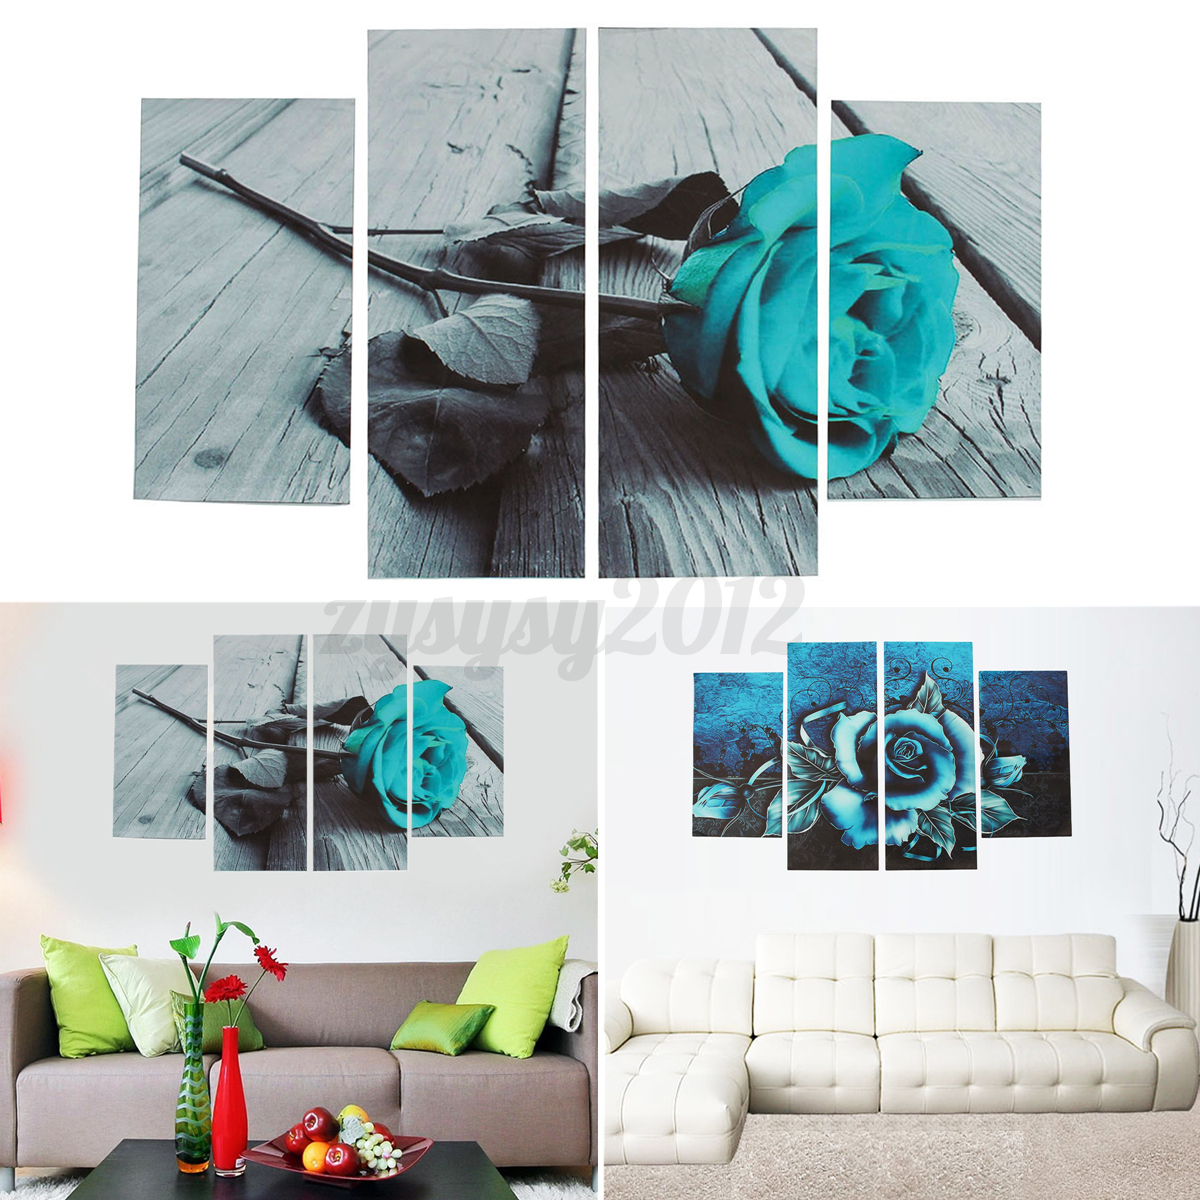 Uk Abstract Floral Flower Teal Rose Canvas Print Wall Art Pictures Home Decor Ebay